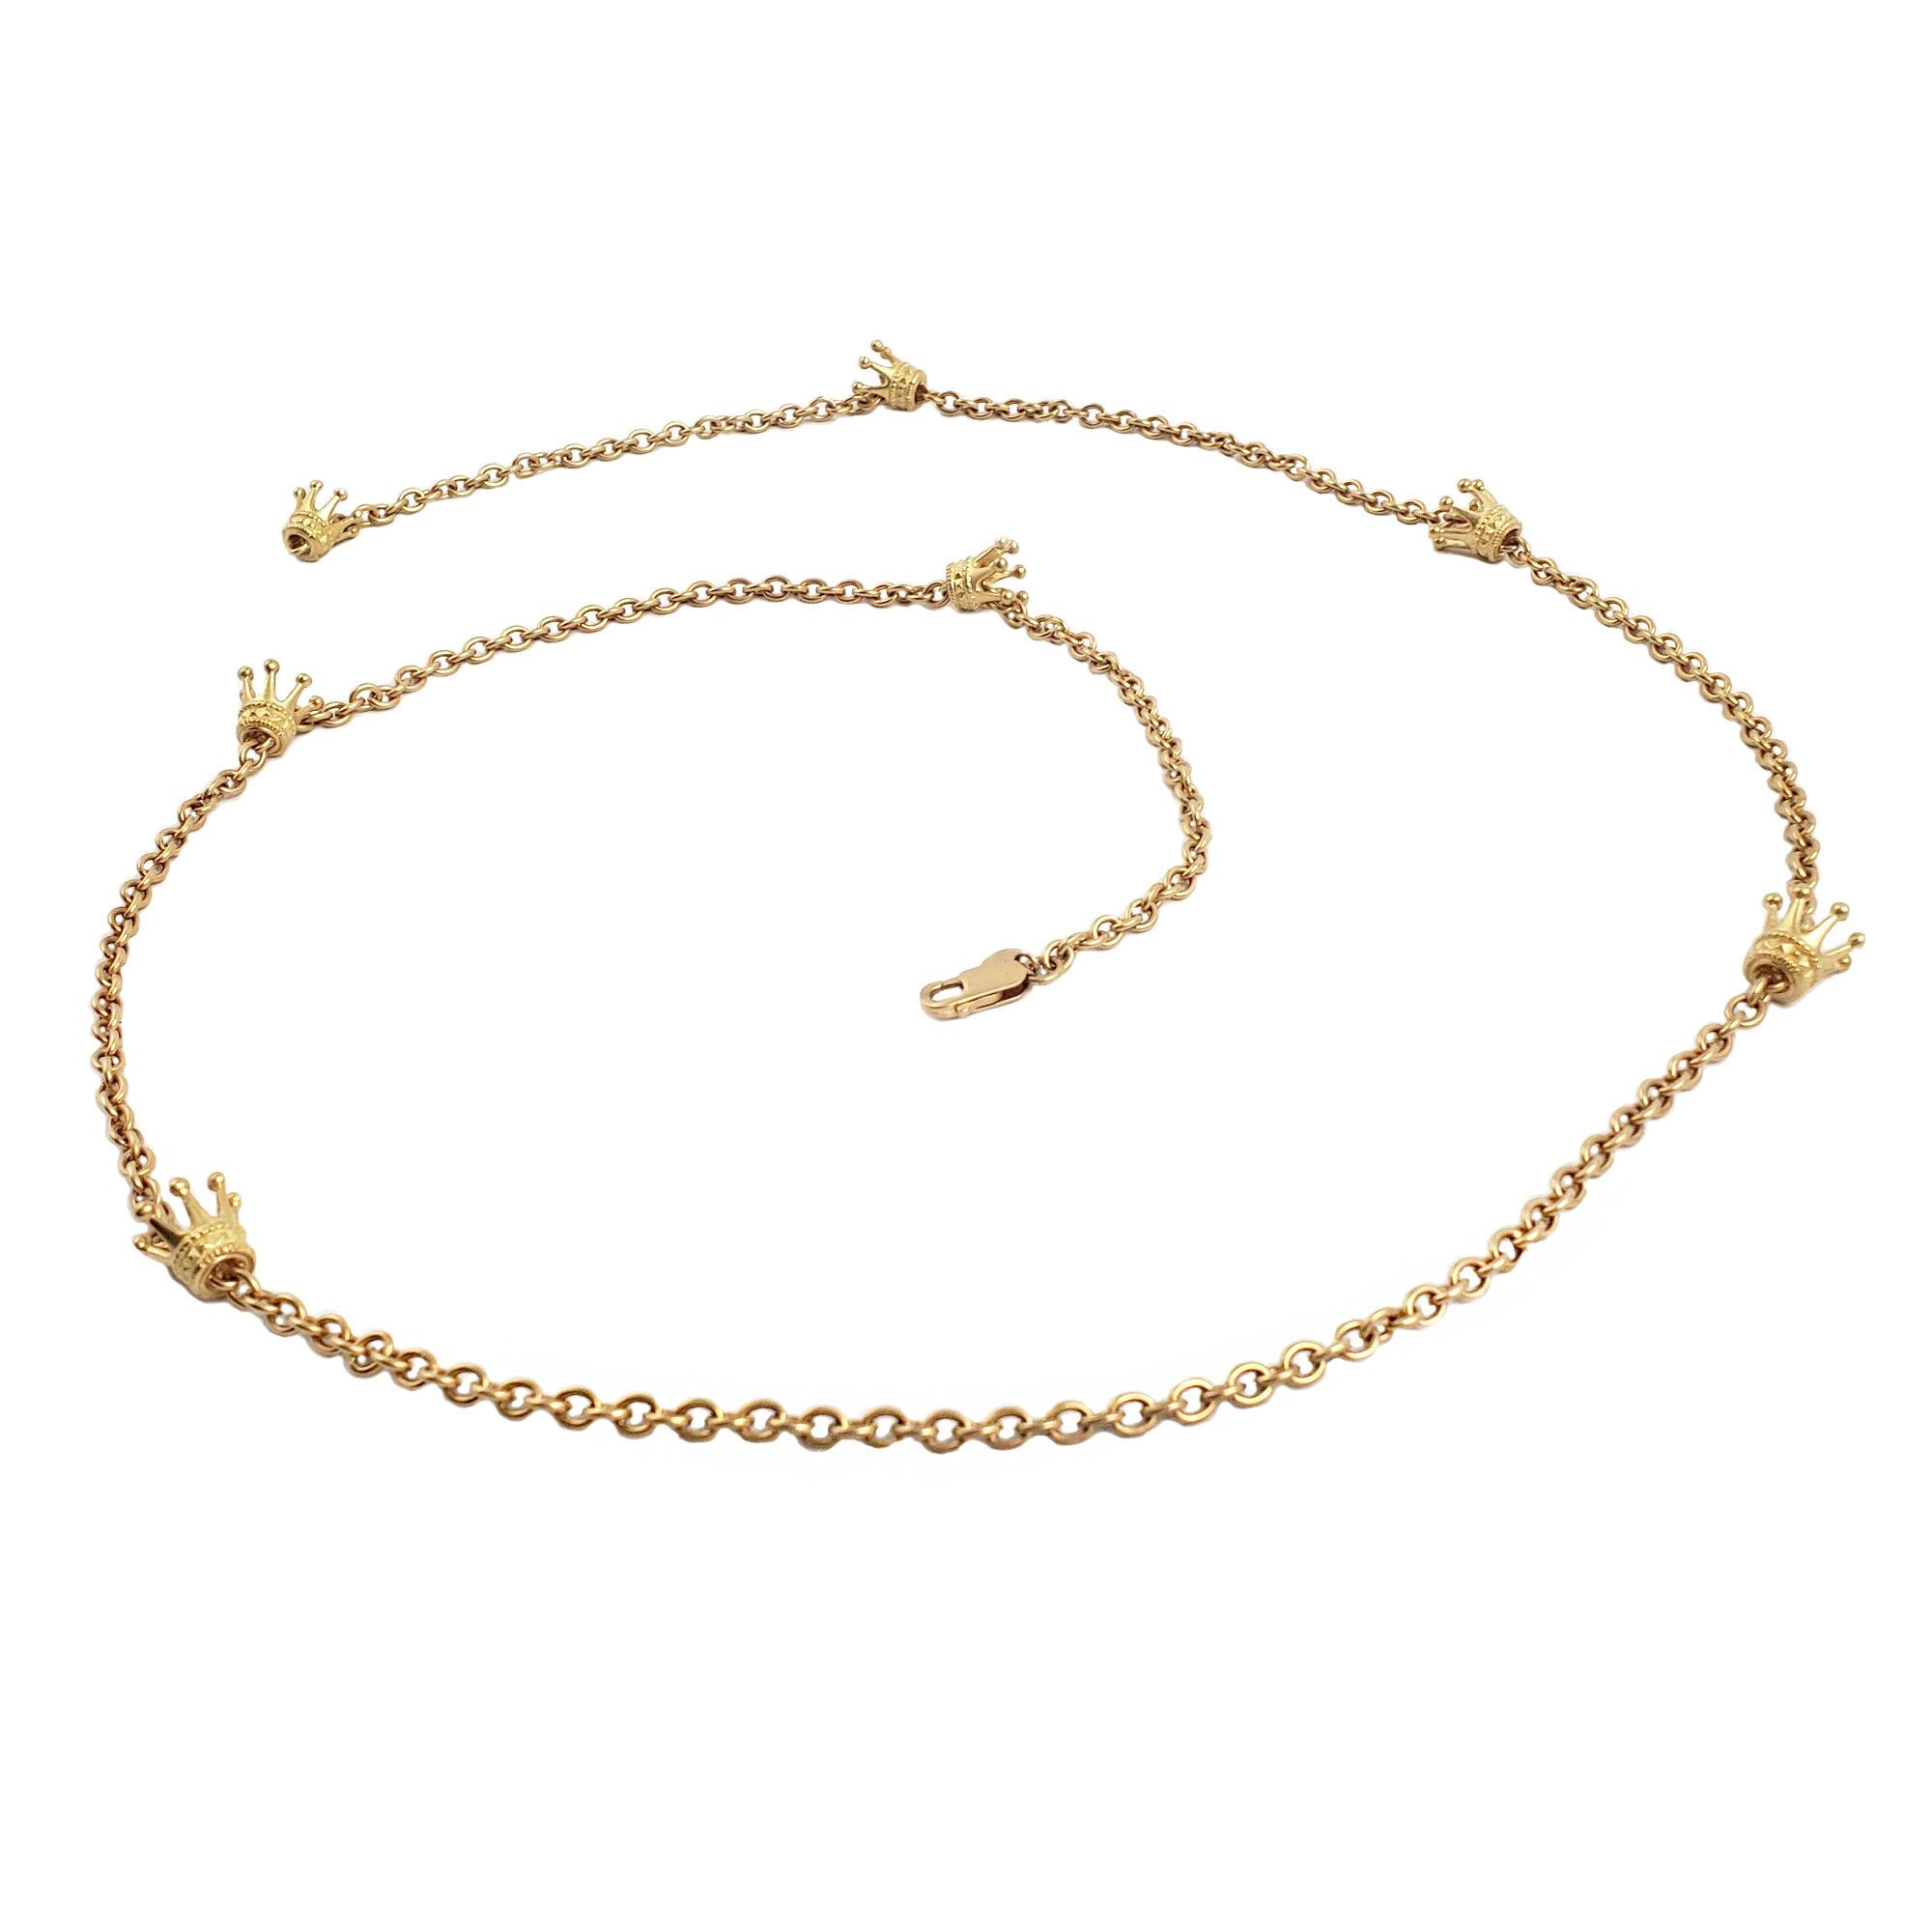 14K Solid Gold,Rose Gold,White Gold,585,6.5,7,7.5,8,8.5,9,10  1.1 mm Flat Cable Chain Bracelets and Anklets